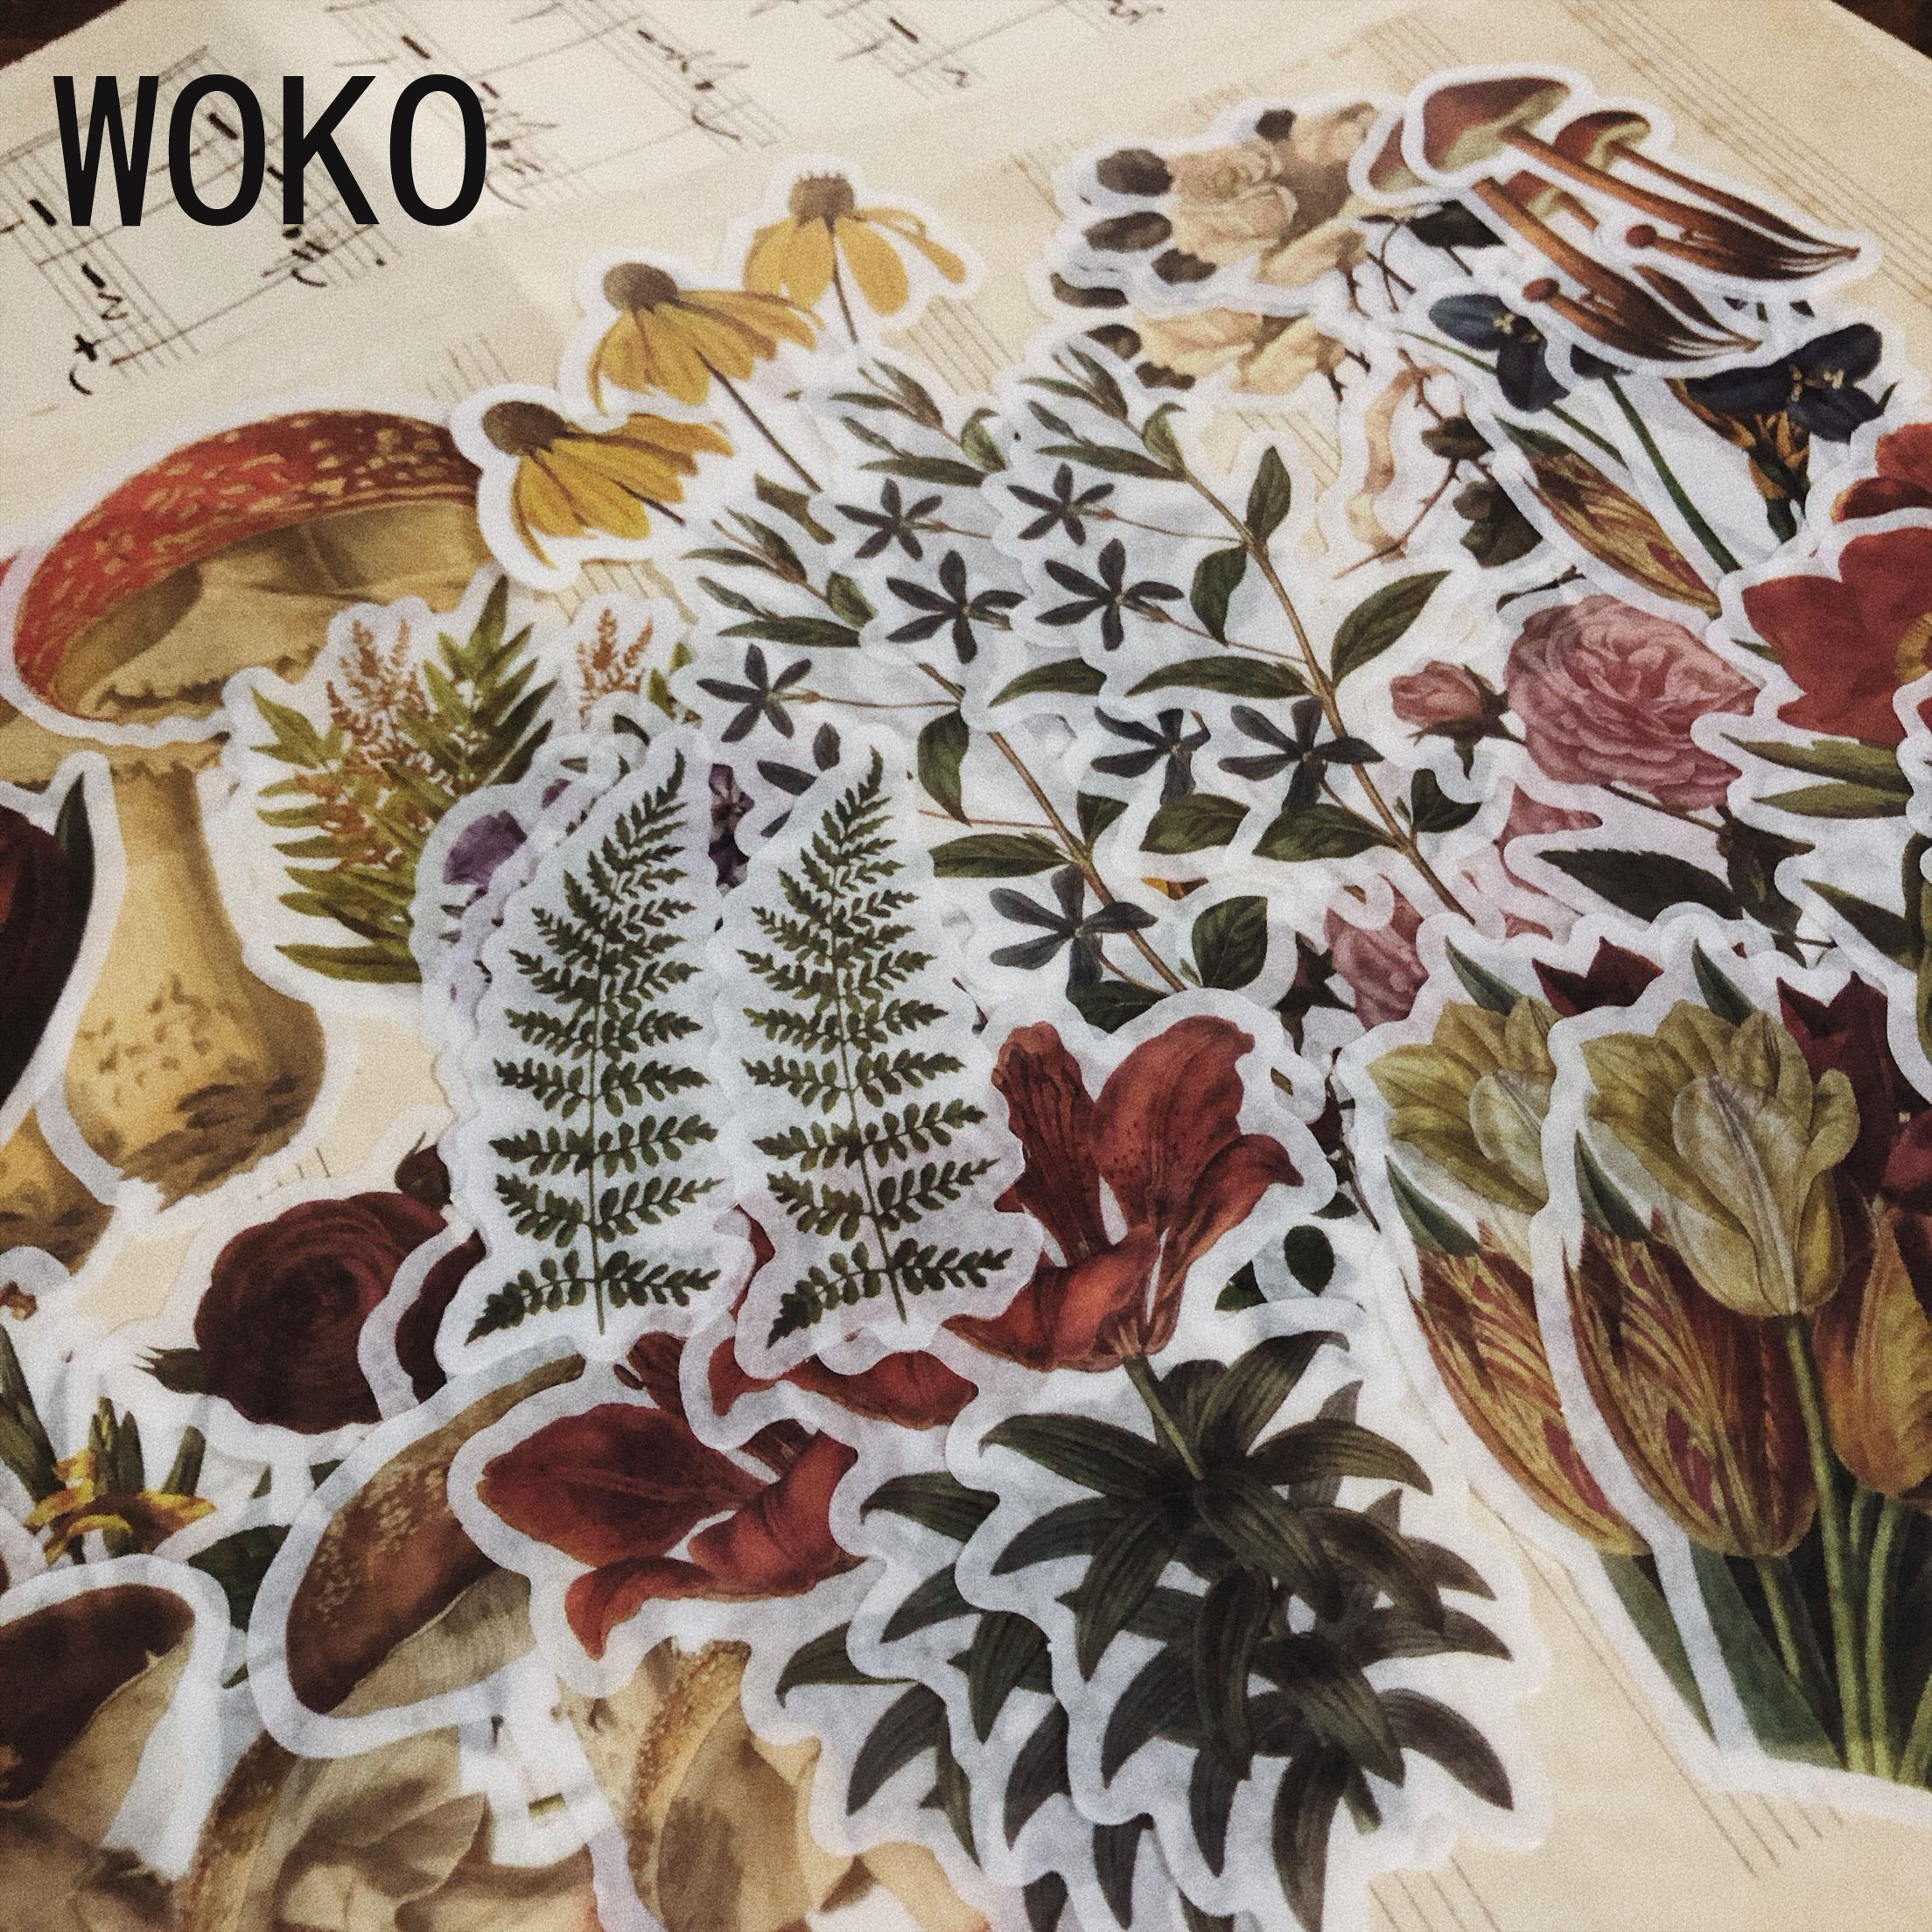 WOKO 60pcs Bronzing Plant Material Washi Sticker Retro Dried Flower Fungi Fern Rose Deco Sticker DIY Bullet Journal Scrapbooking